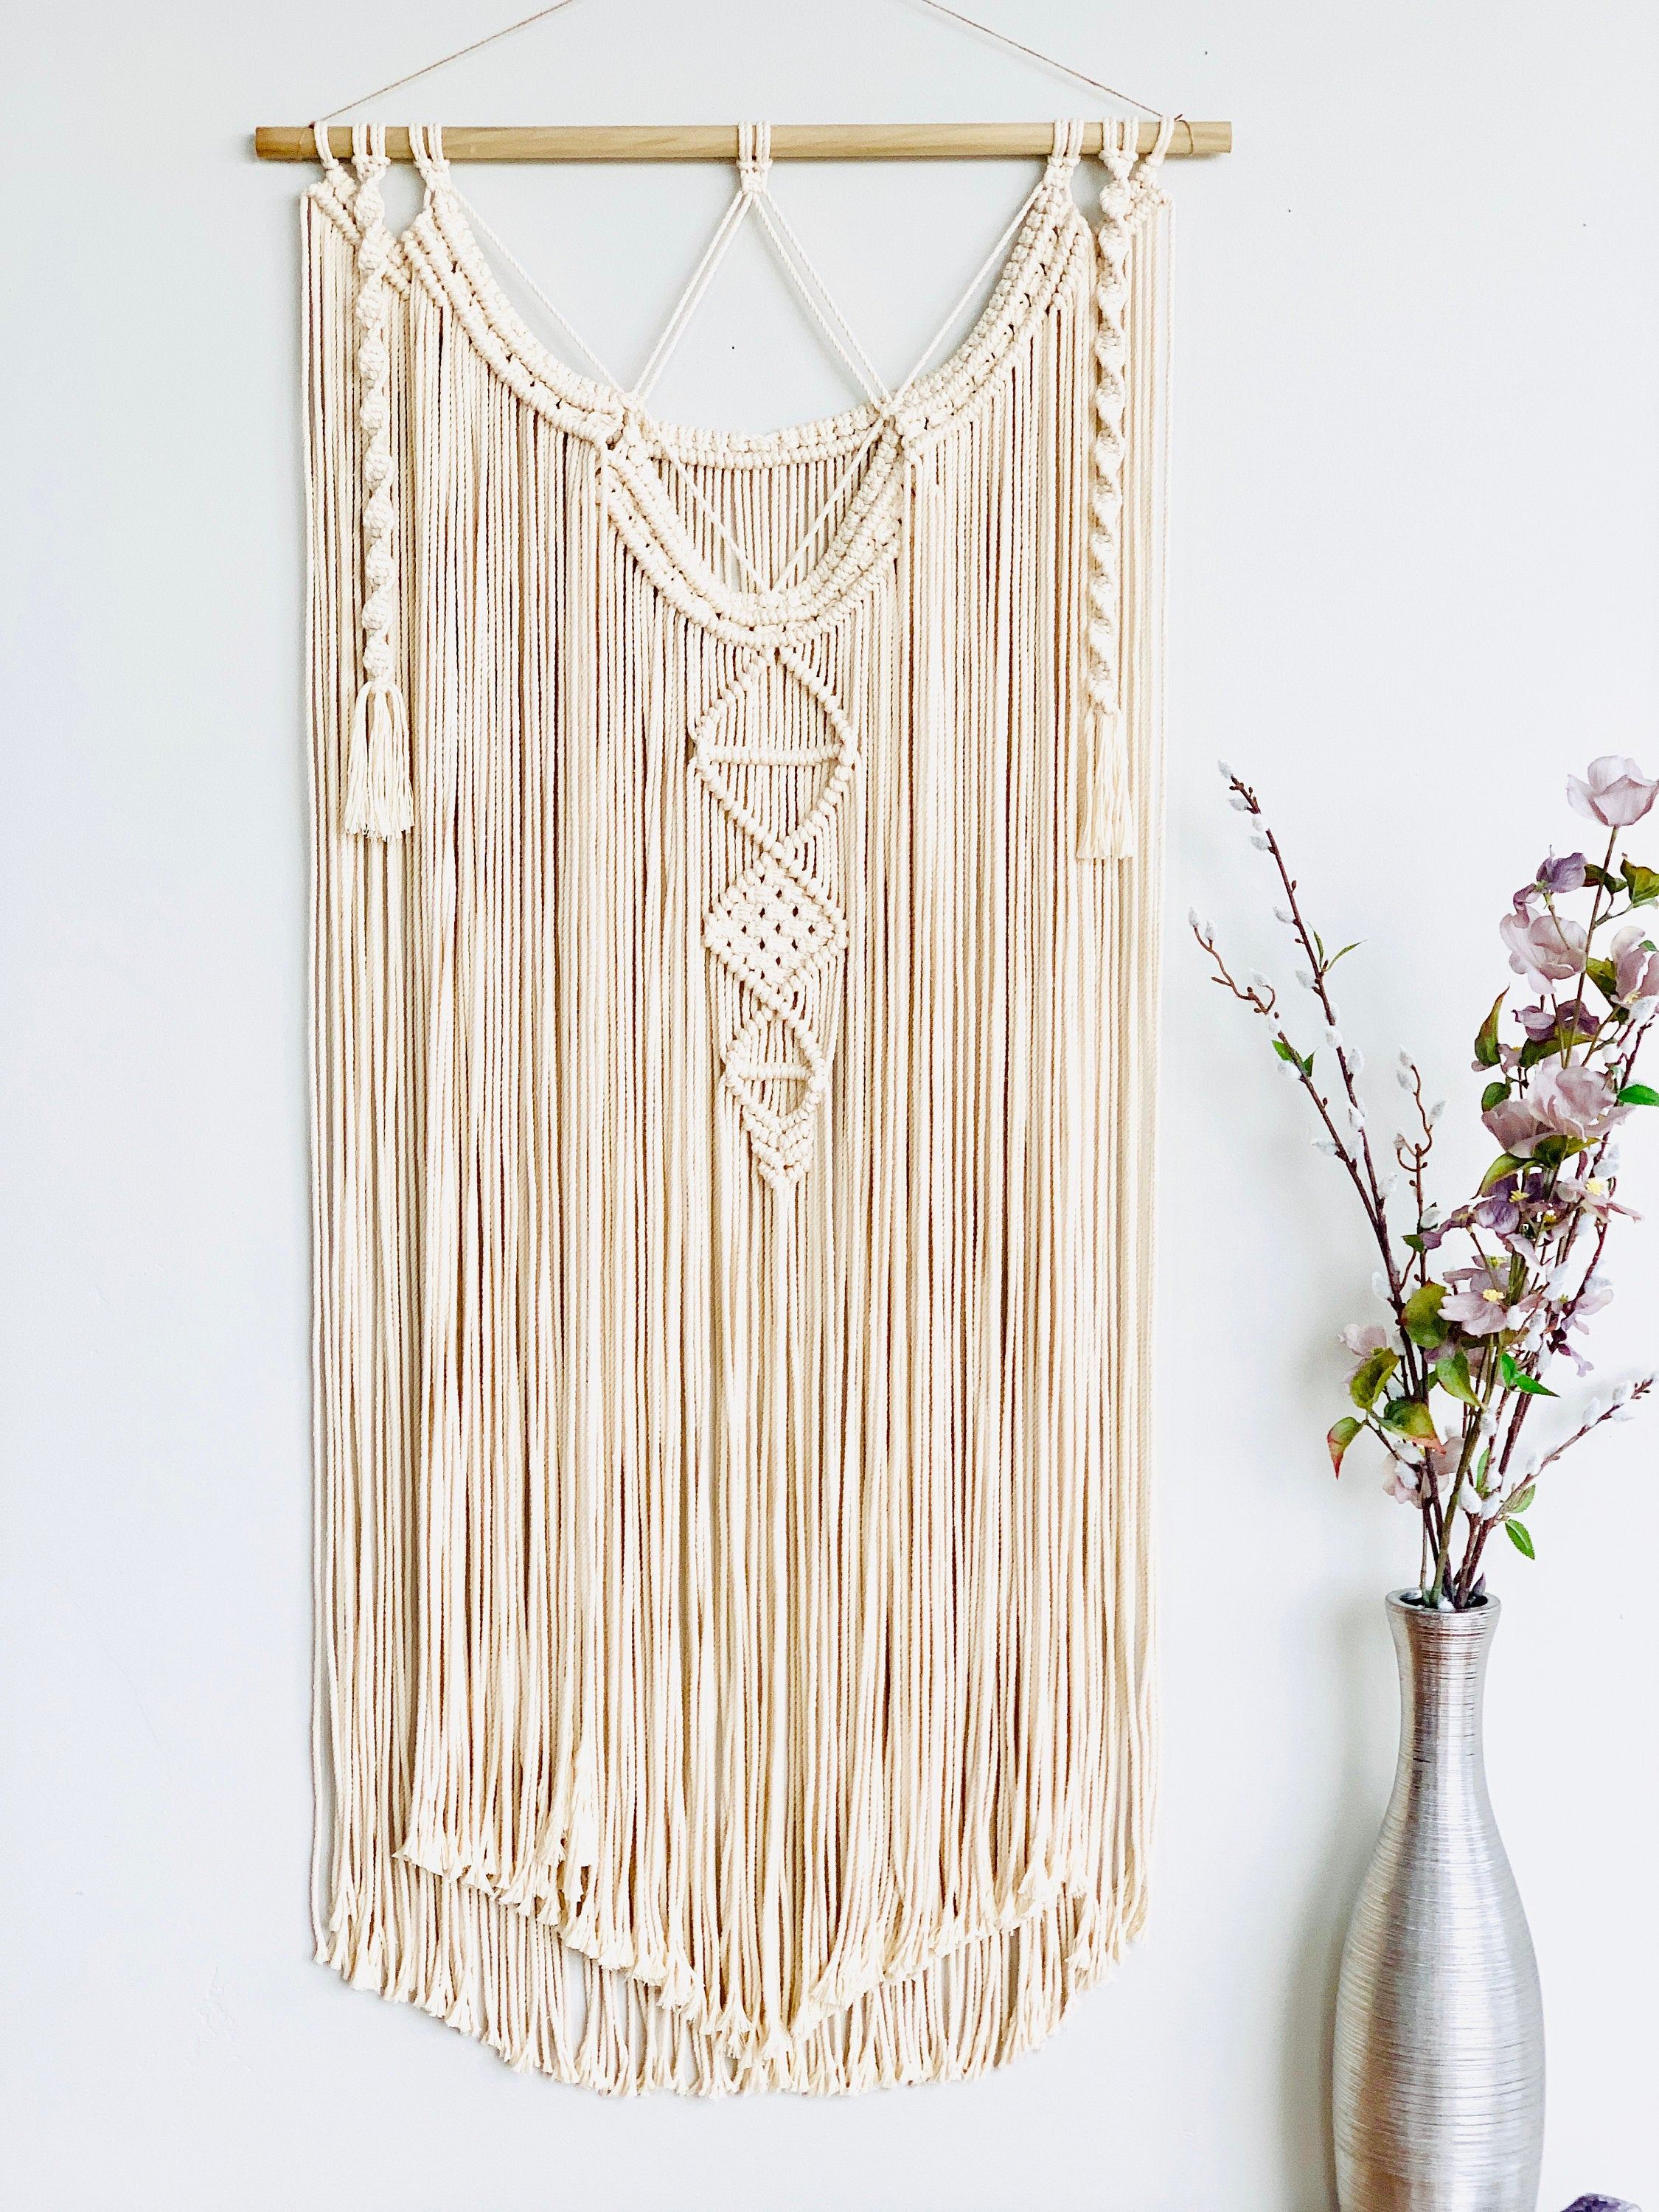 Super Long Boho Macrame Wall Hanging, Extra Large Macrame Wall Hanging, Layered Macrame, Tribal Macrame, Bohemian Macrame Wall Art